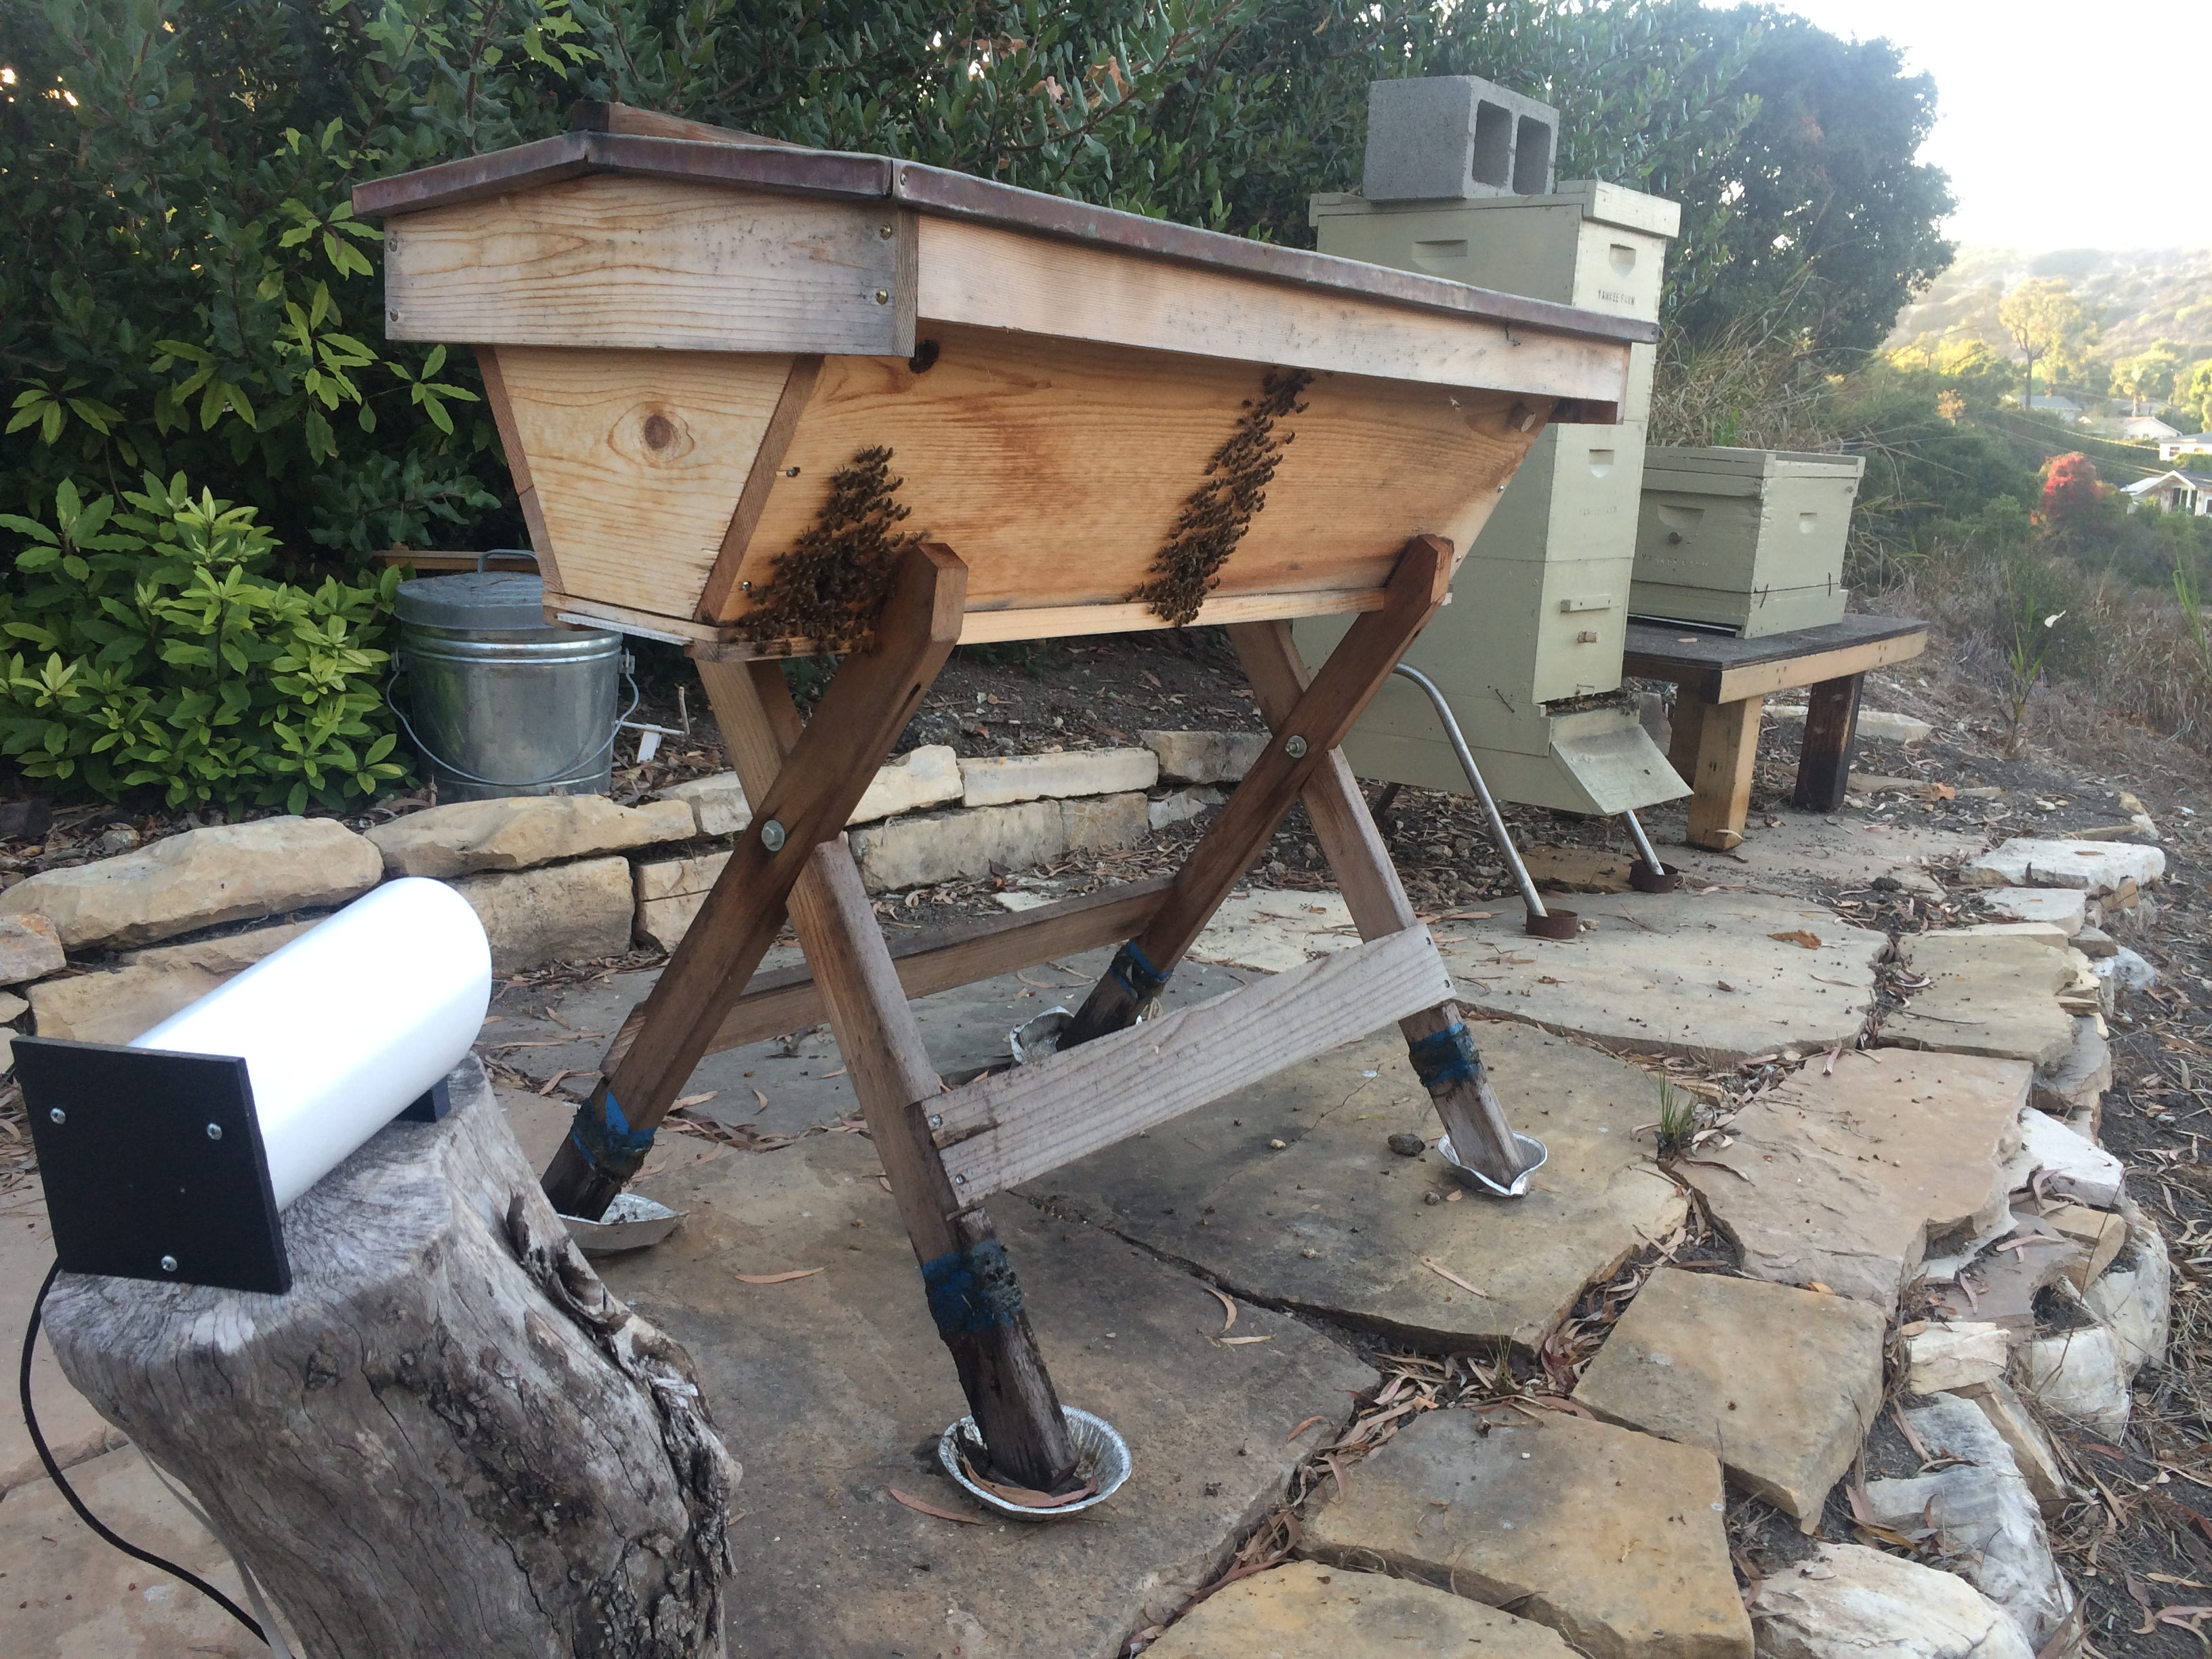 Works on all types of hives, and doesn't interfere with the bees!